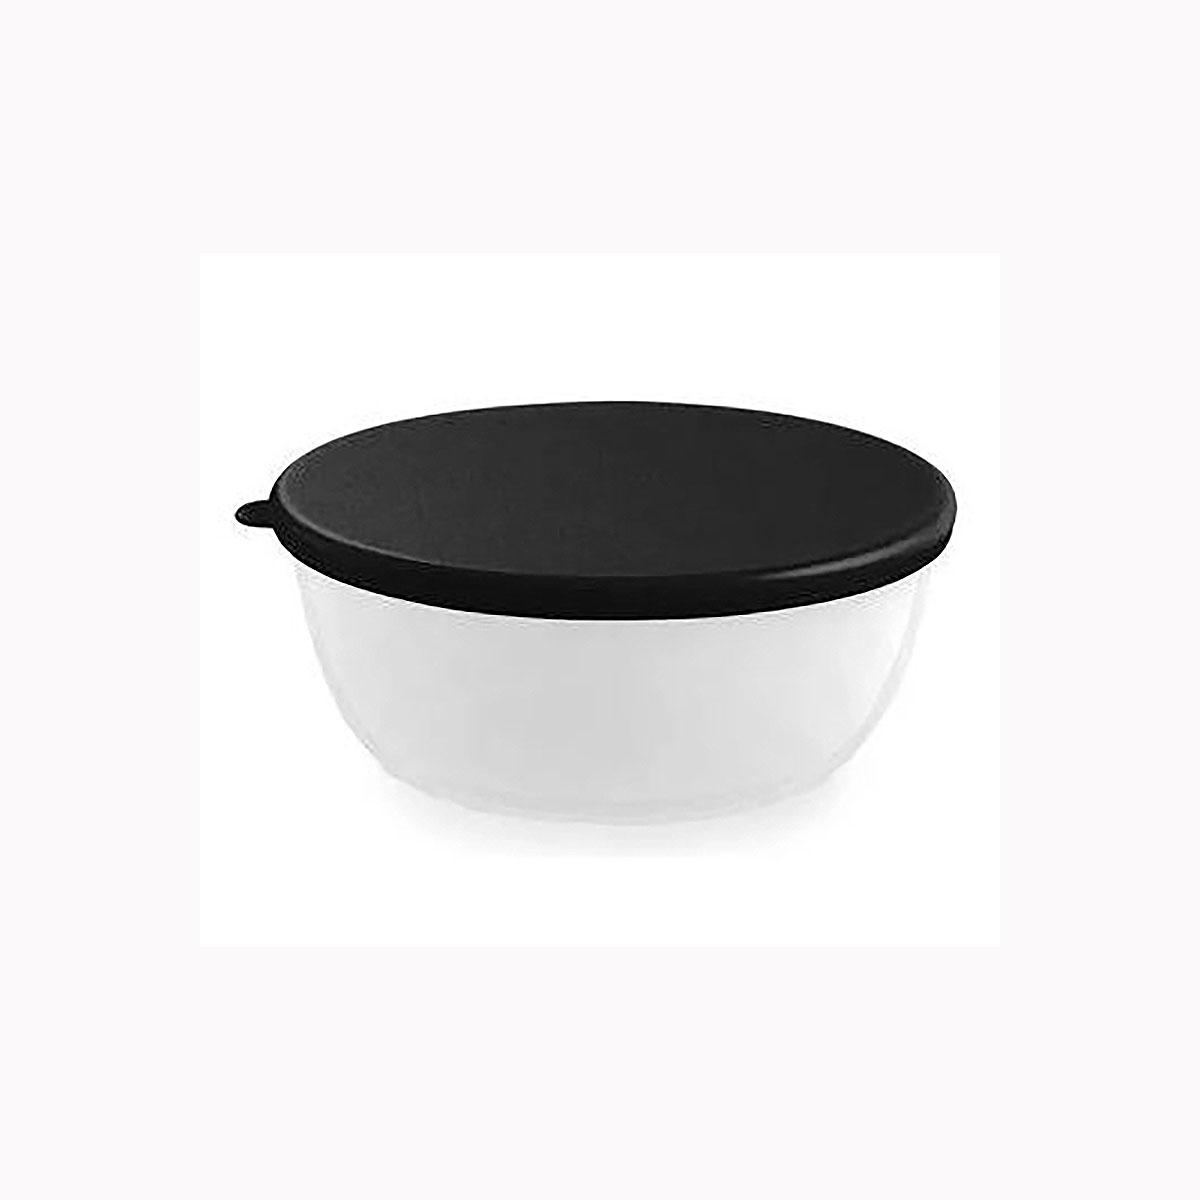 Kibble On the Go Bowl with Lid by TarHong